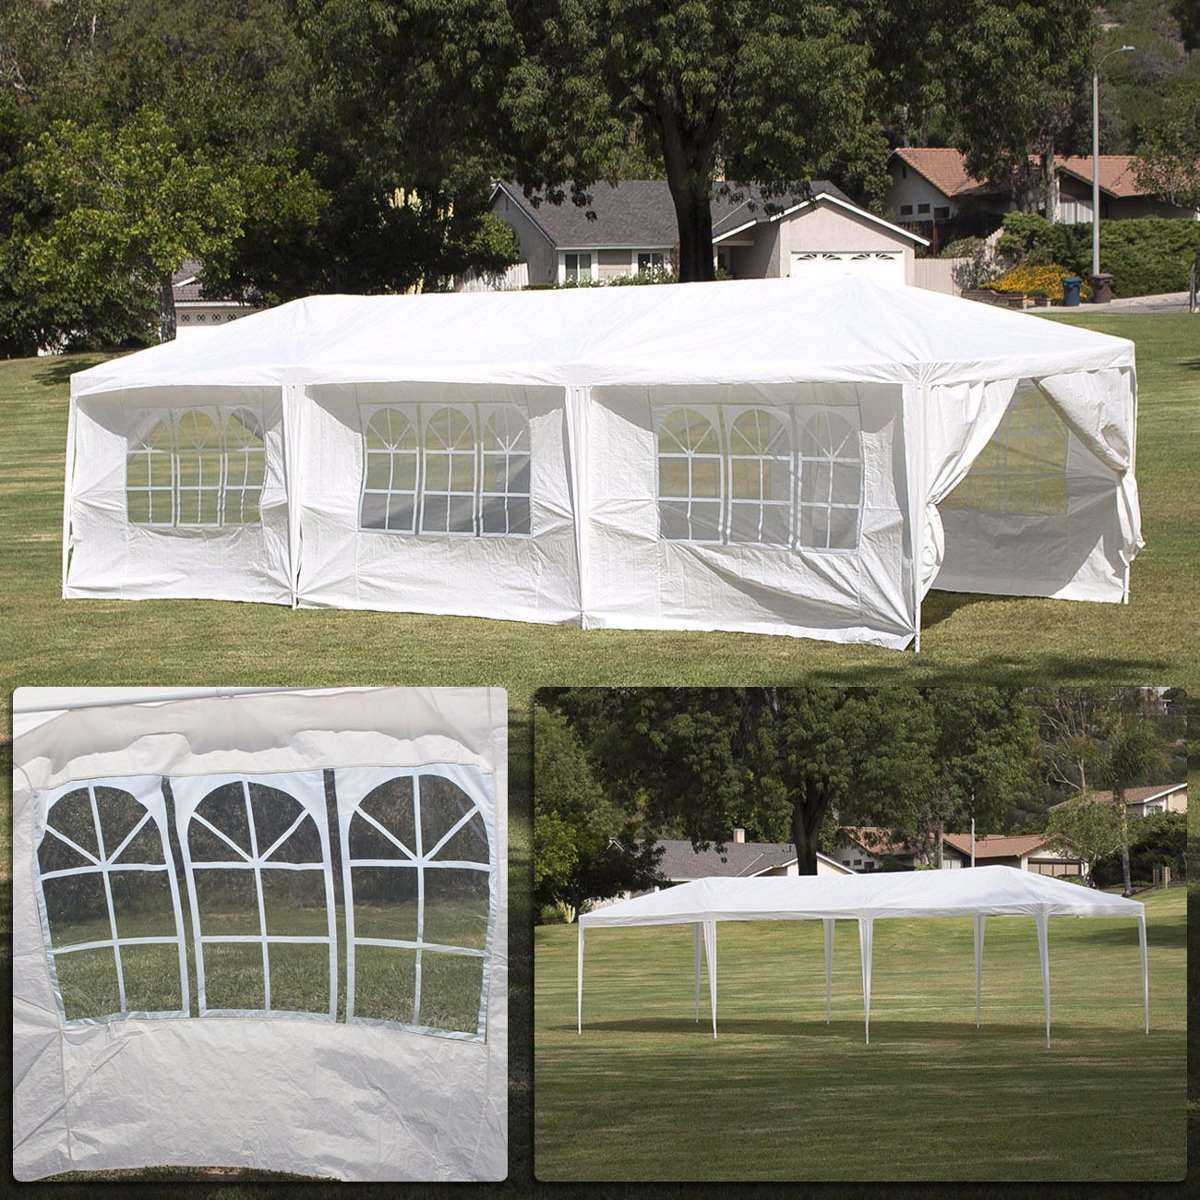 Toldo fiestas bodas carpa 8 paredes ventanas 3 x 9 mts for Gazebo plegable easy